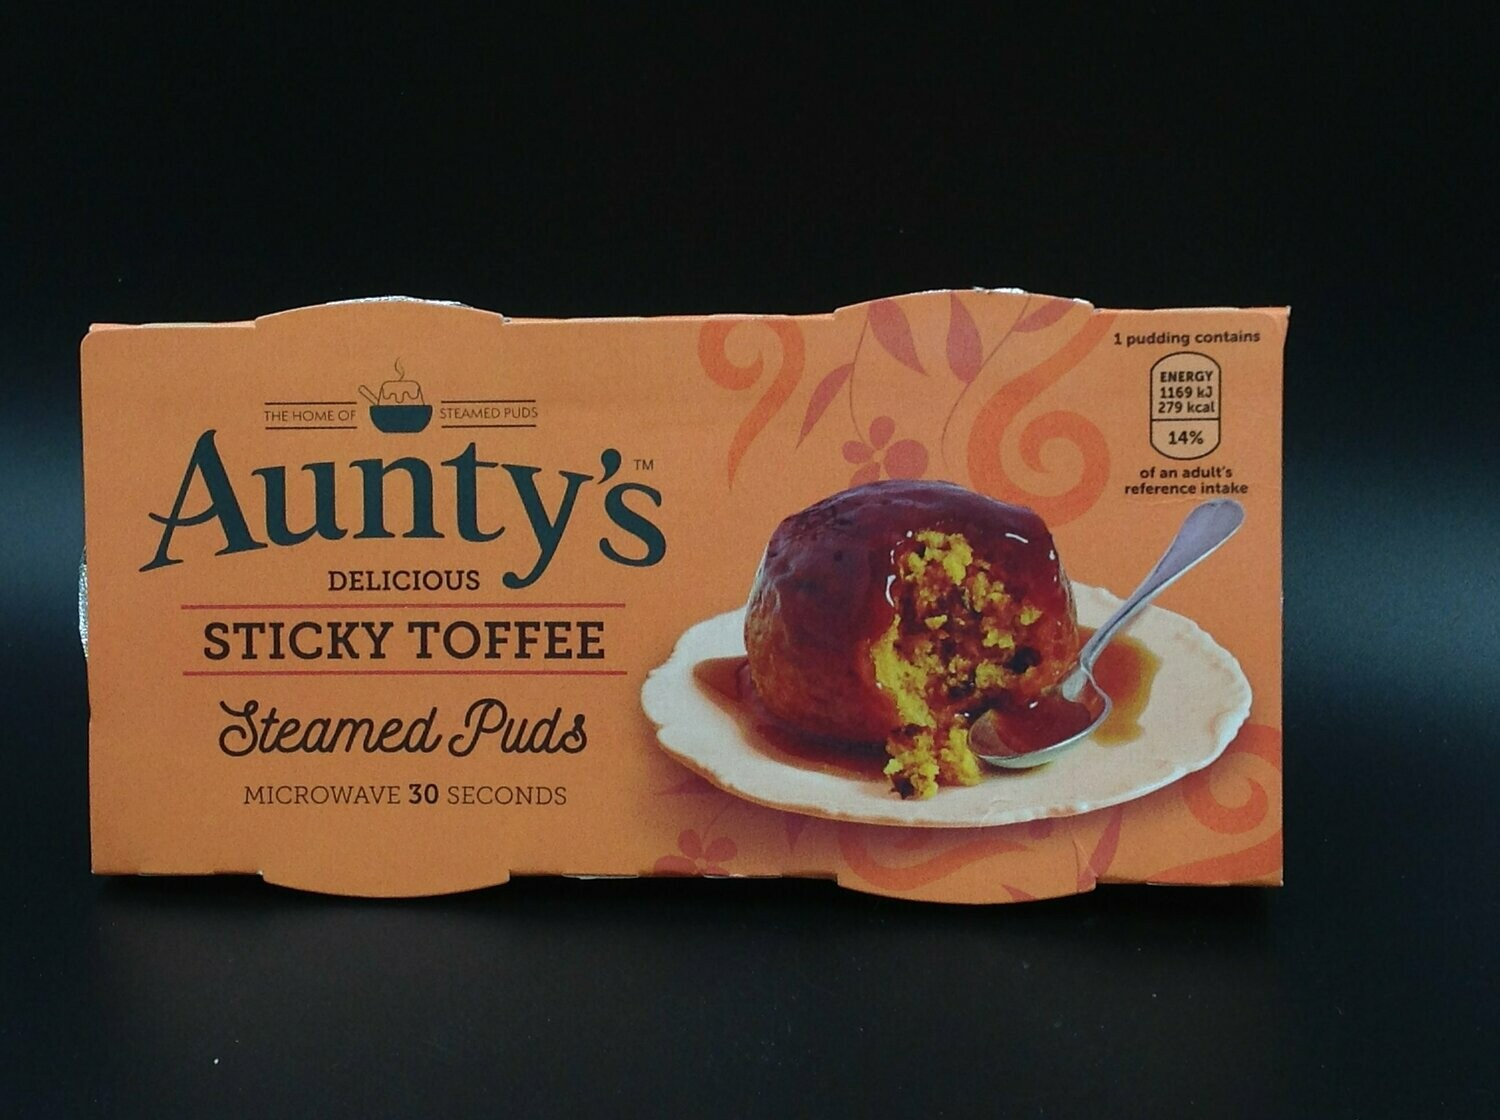 Aunty's Sticky Toffee Steamed Puds 2x95g